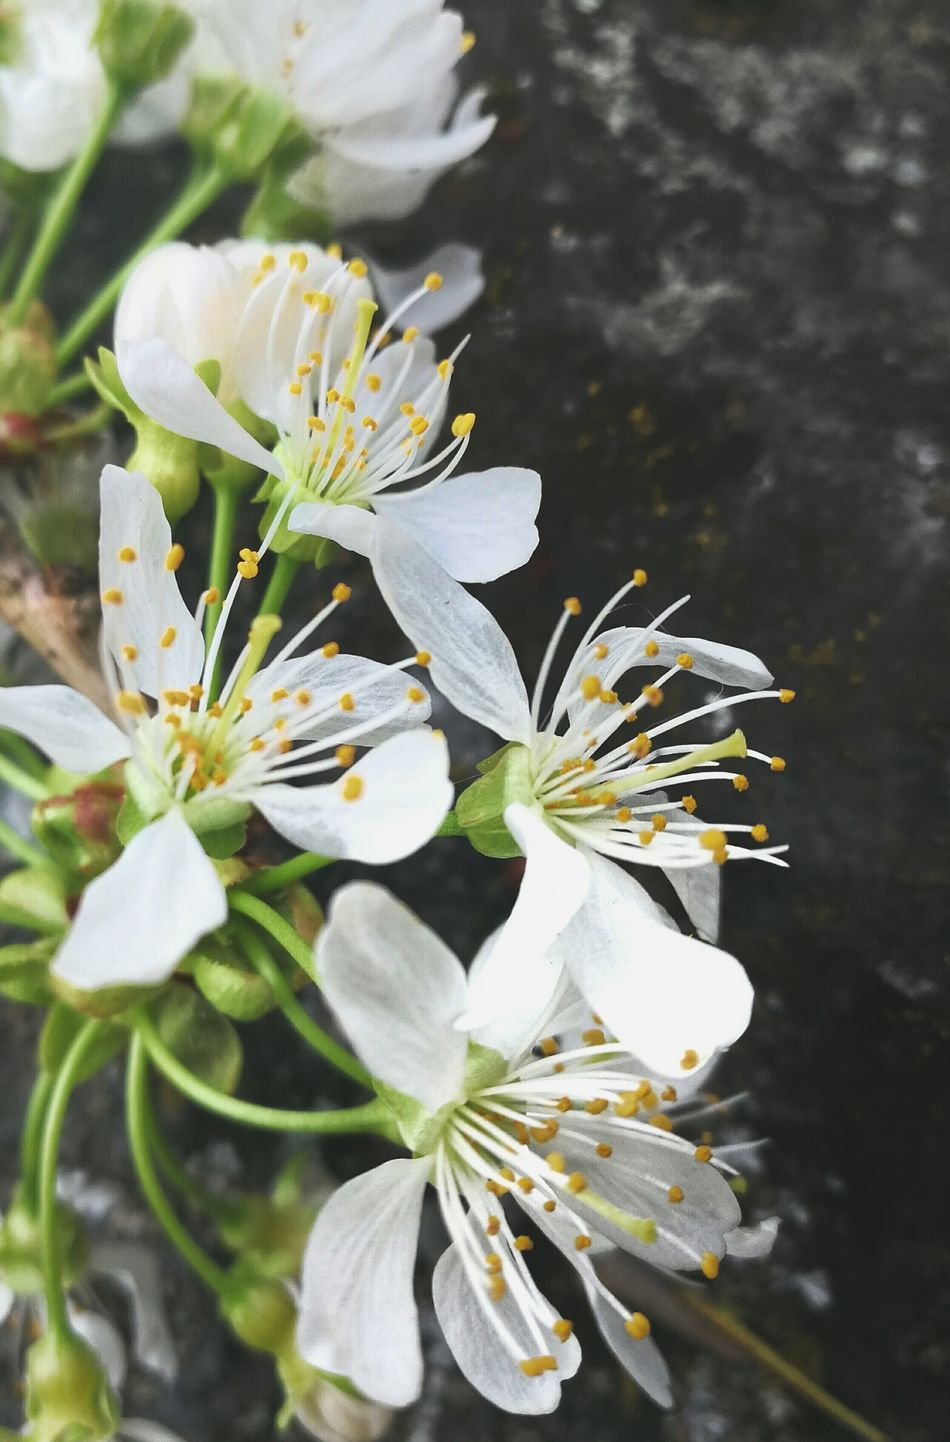 Shortlived Flower Flowers Flower Collection Close-up Check This Out Beauty In Nature Taking Photos Sakura Blossom Cherry Blossoms Cherry Blossom Blossoms  Spring Springtime Spring Flowers White Pure Nature Nature_collection Nature Photography Petal Delicate EyeEm Best Shots Closeup